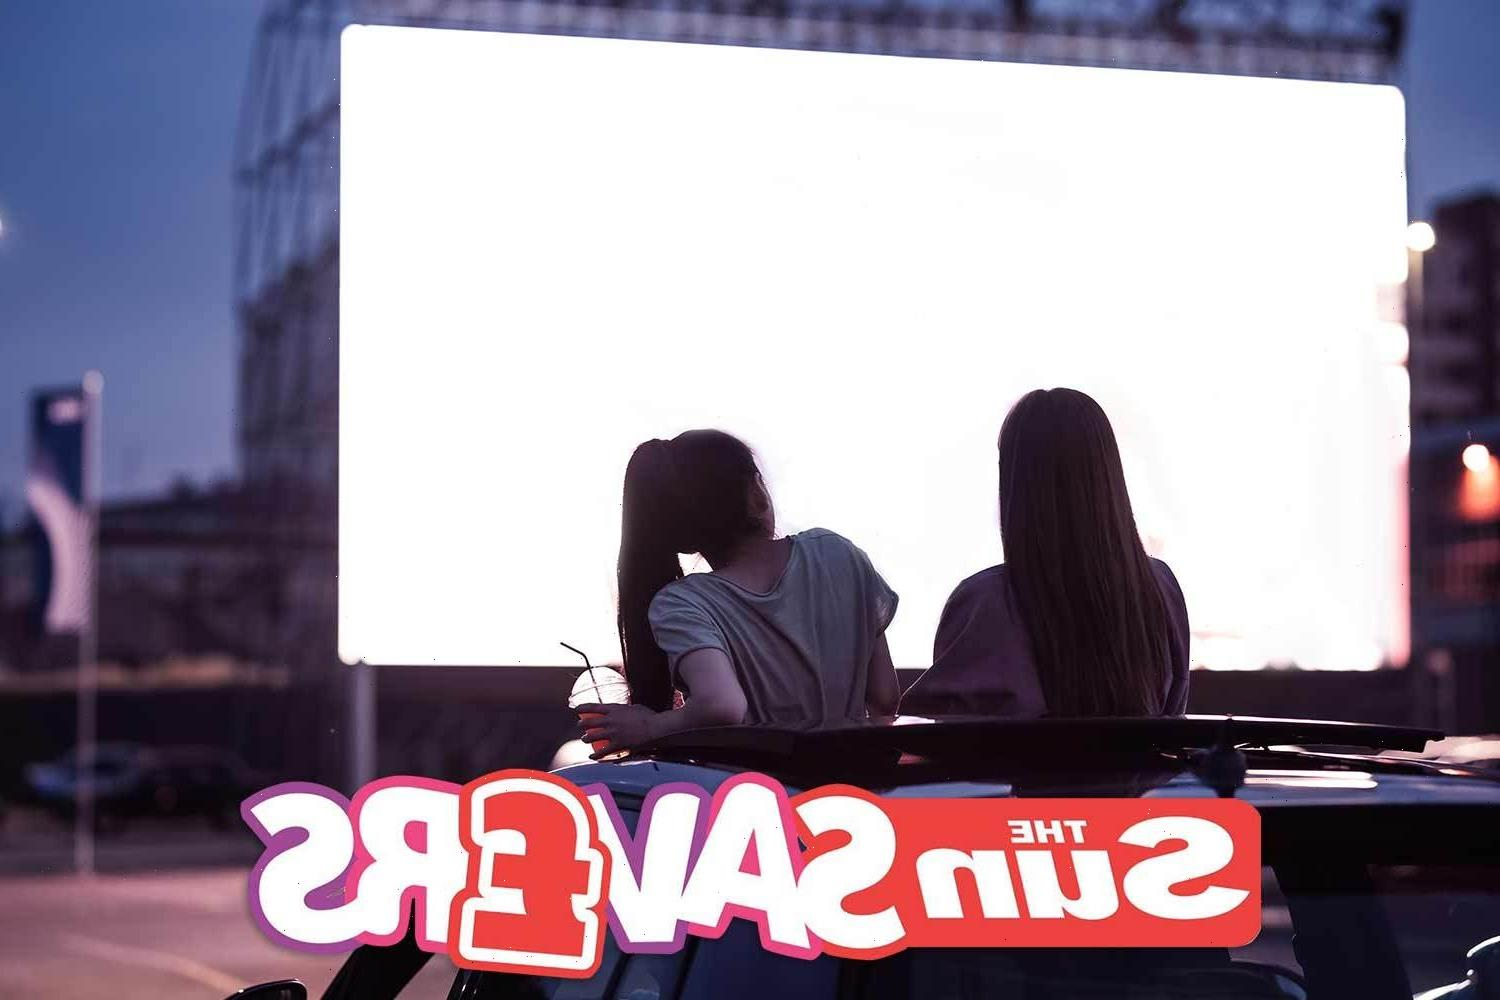 Watch a movie you like for a price you'll love with our top tips